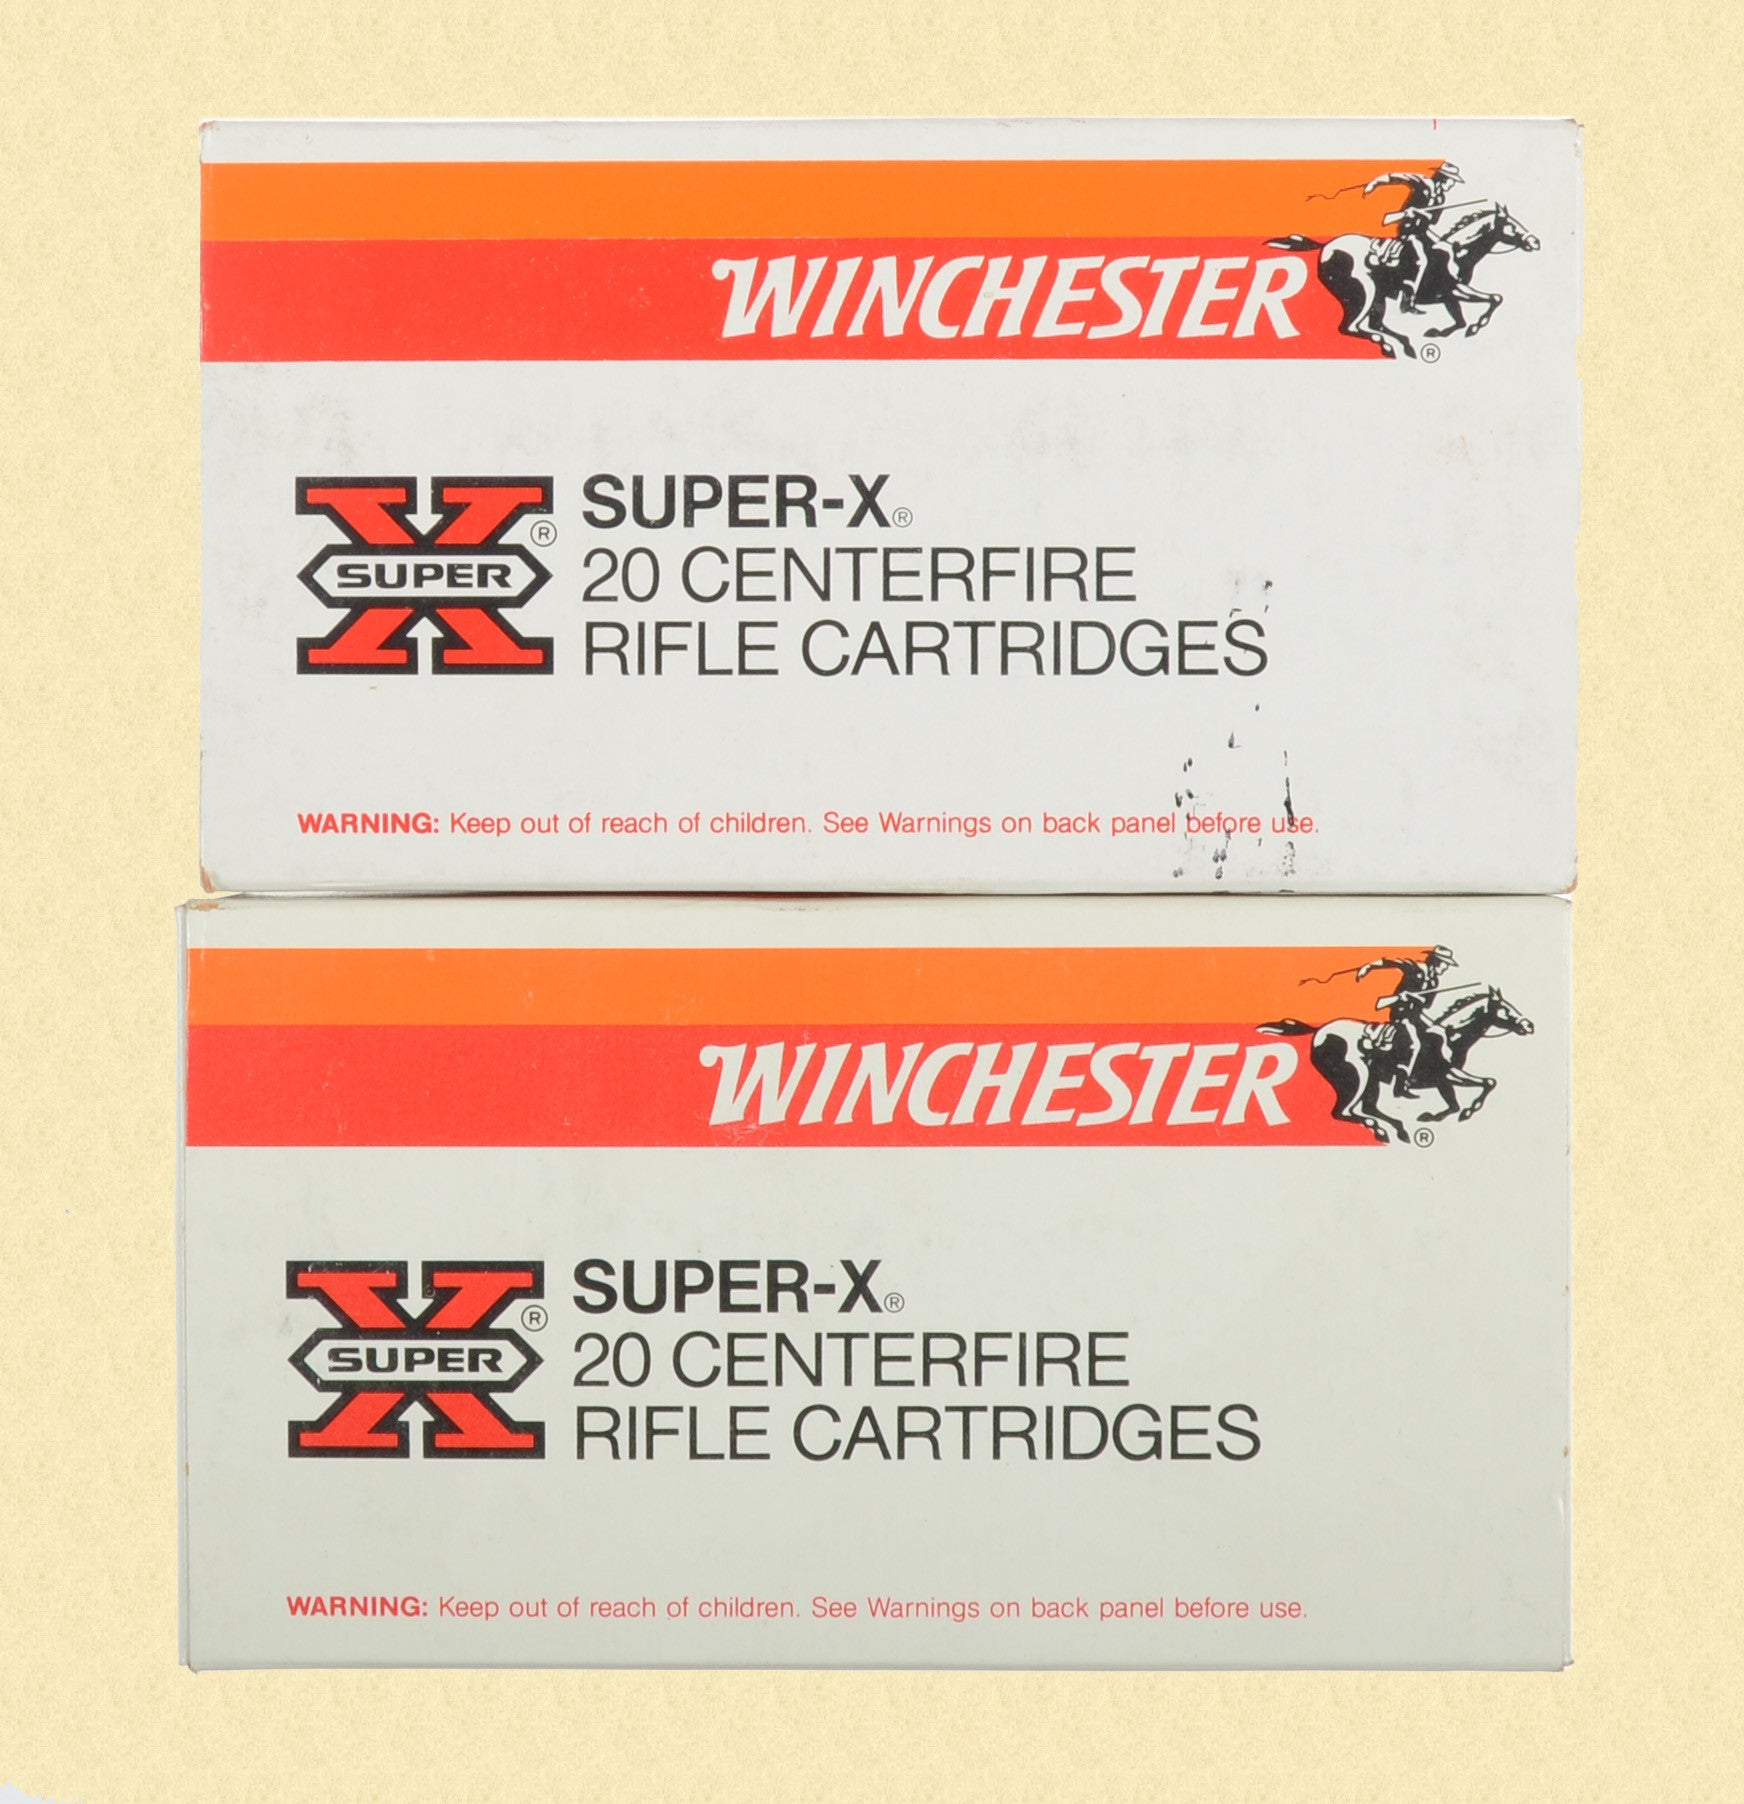 WINCHESTER 338 WIN MAG AMMUNITION